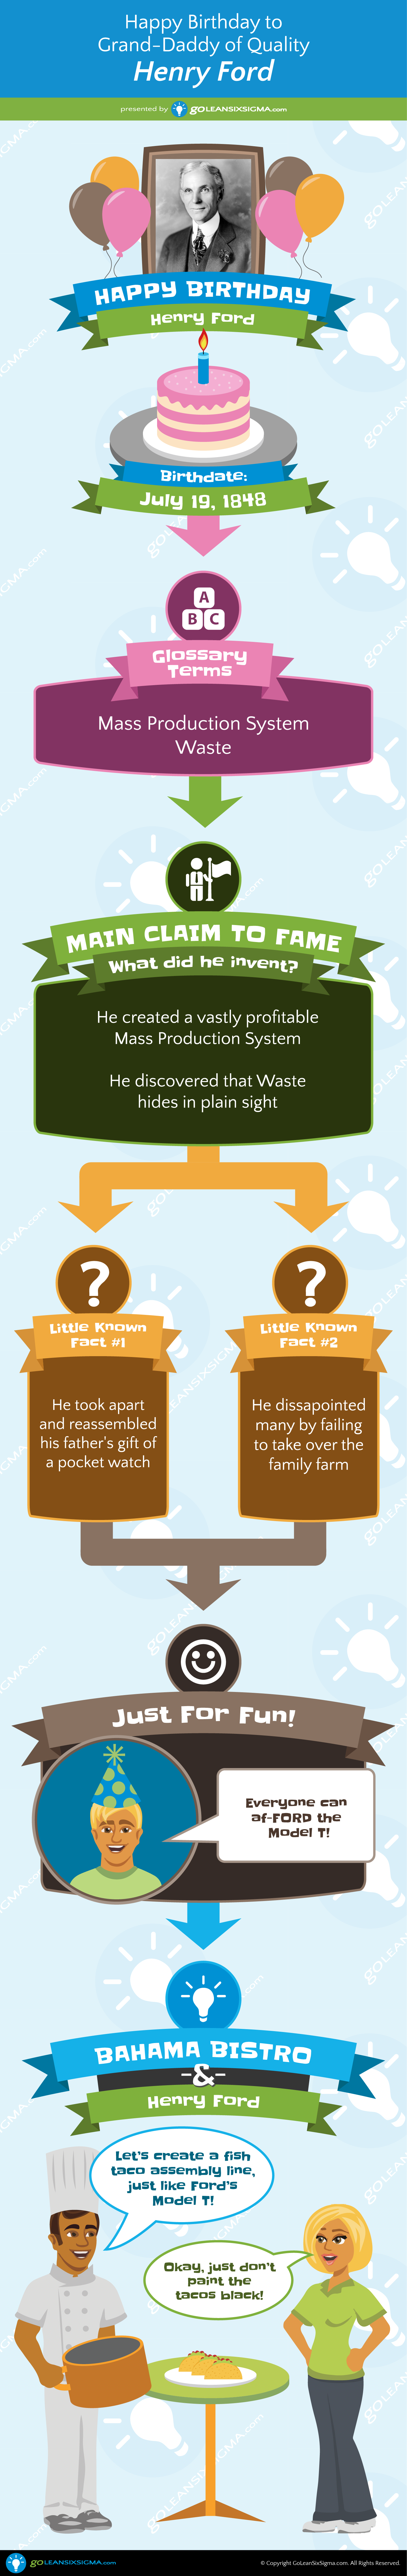 GLSS_Infographic_Grand-Daddies_Henry_Ford_output